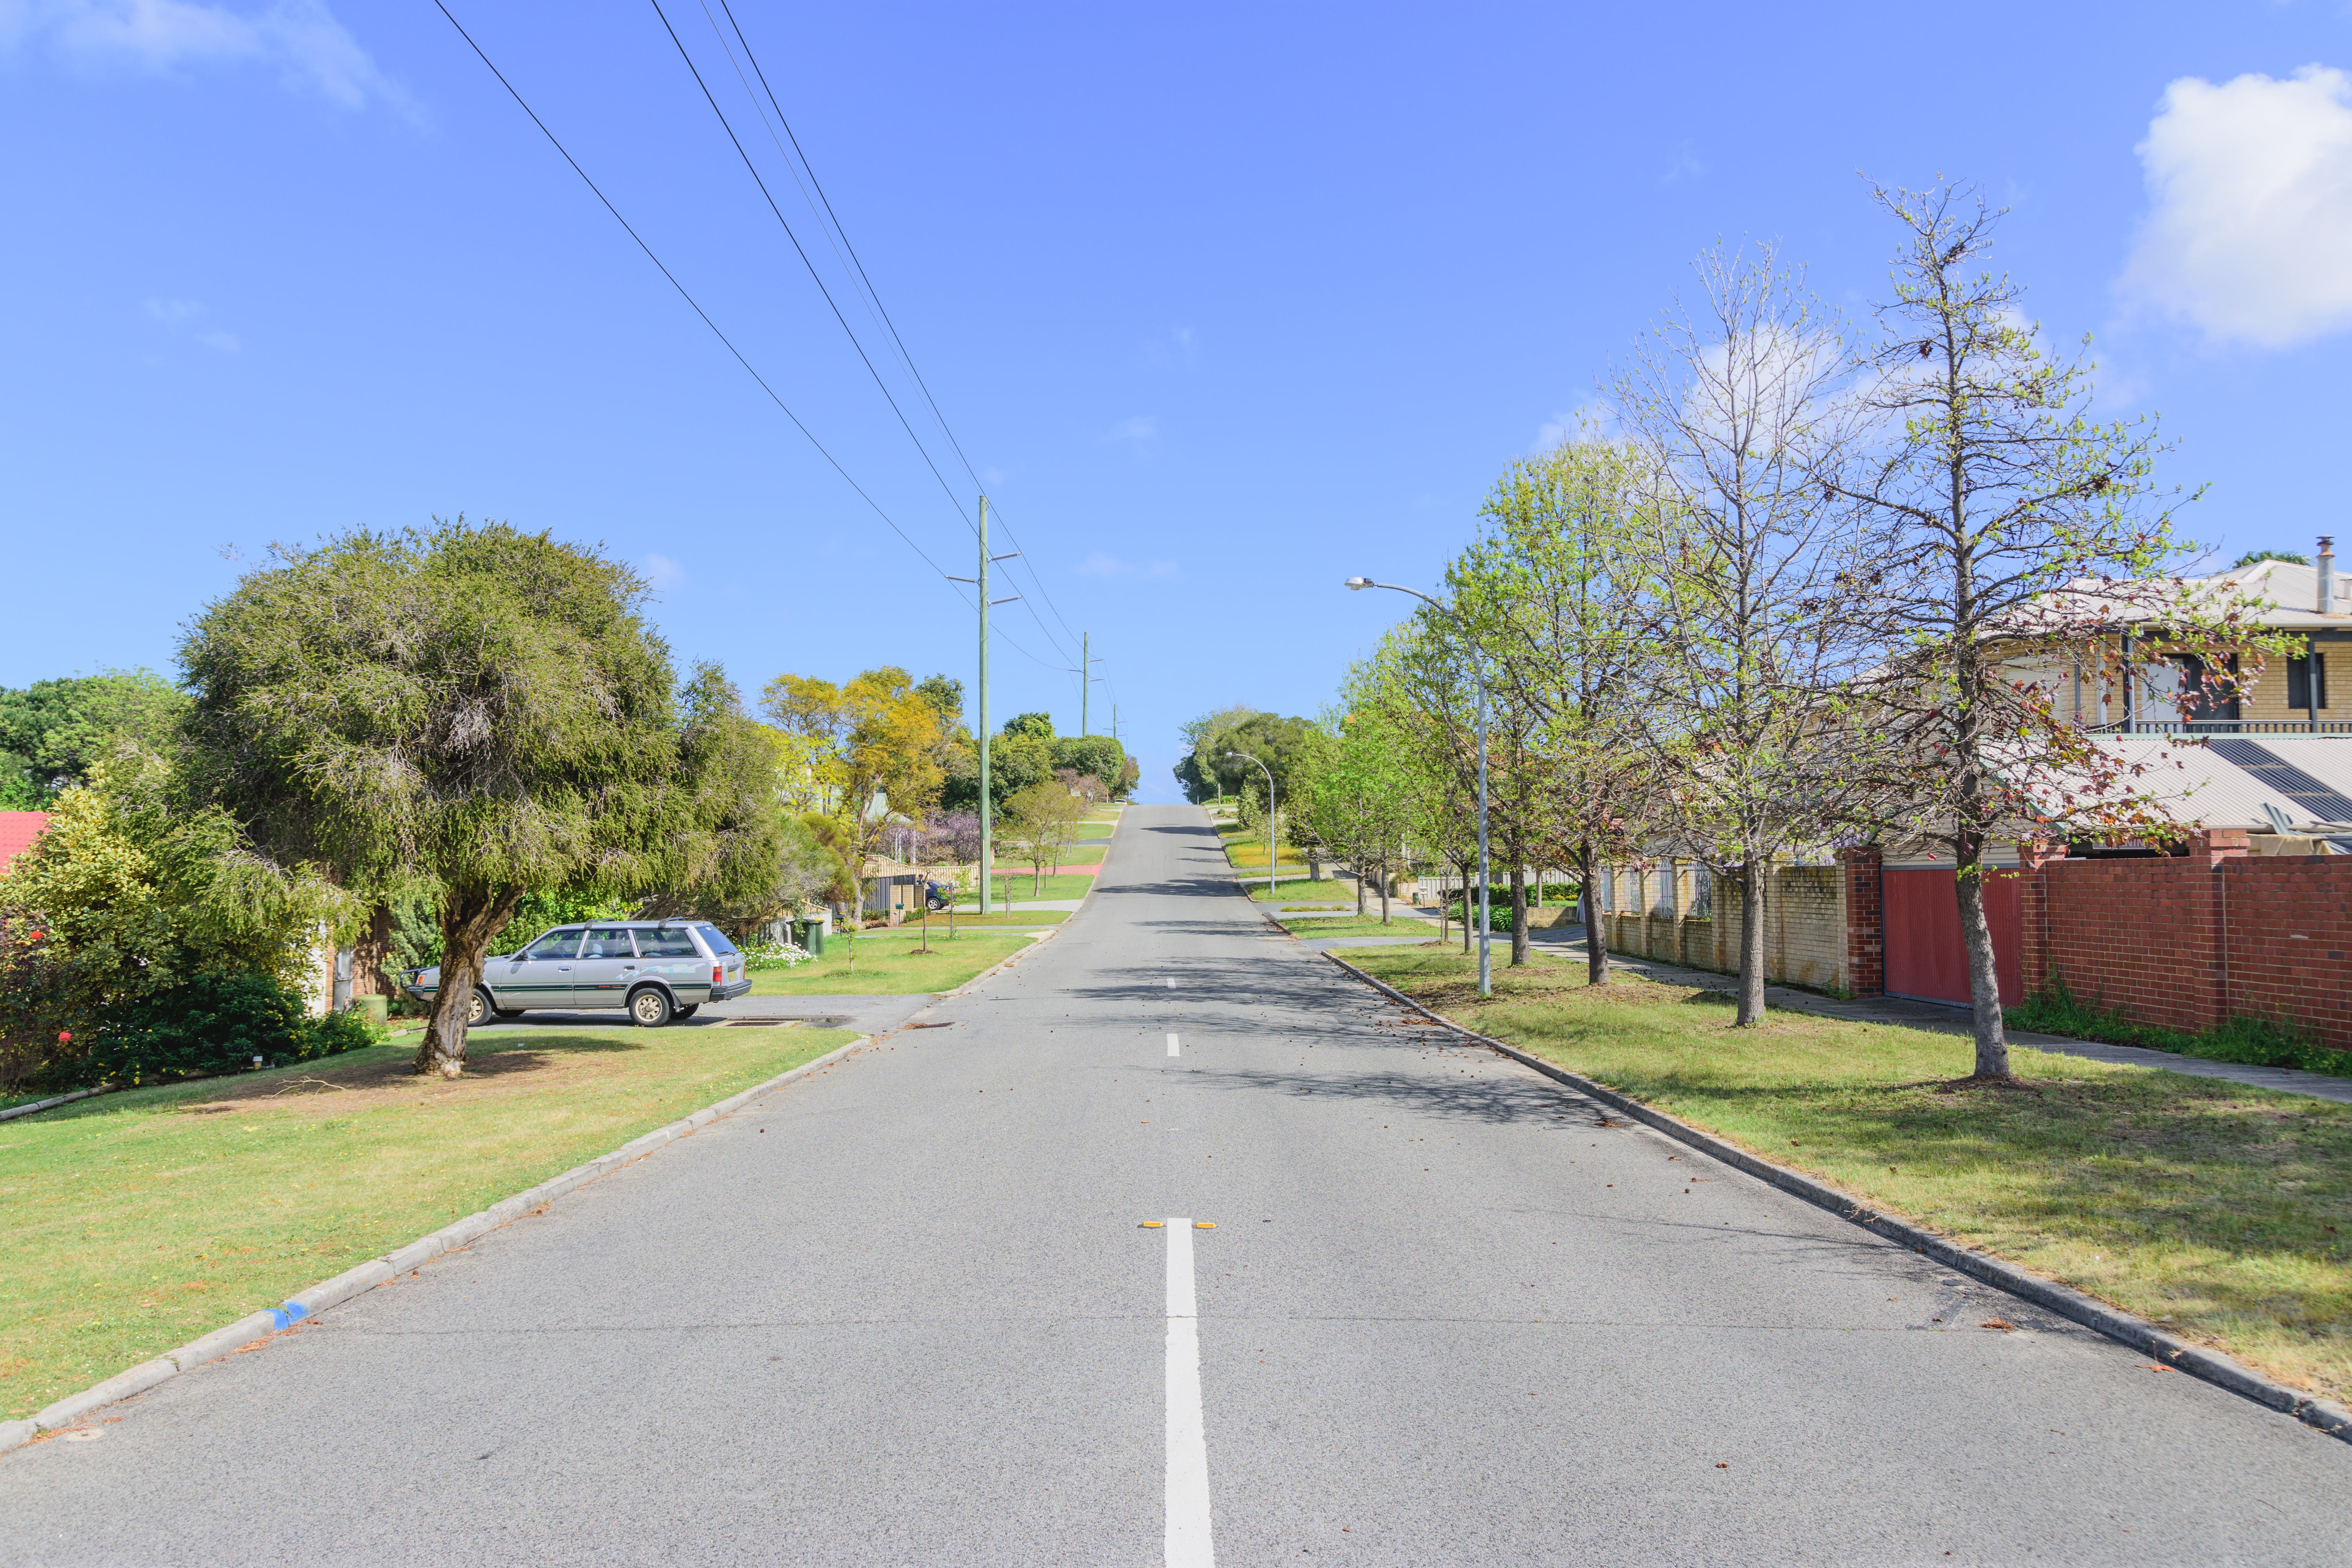 Streetscape with few trees.